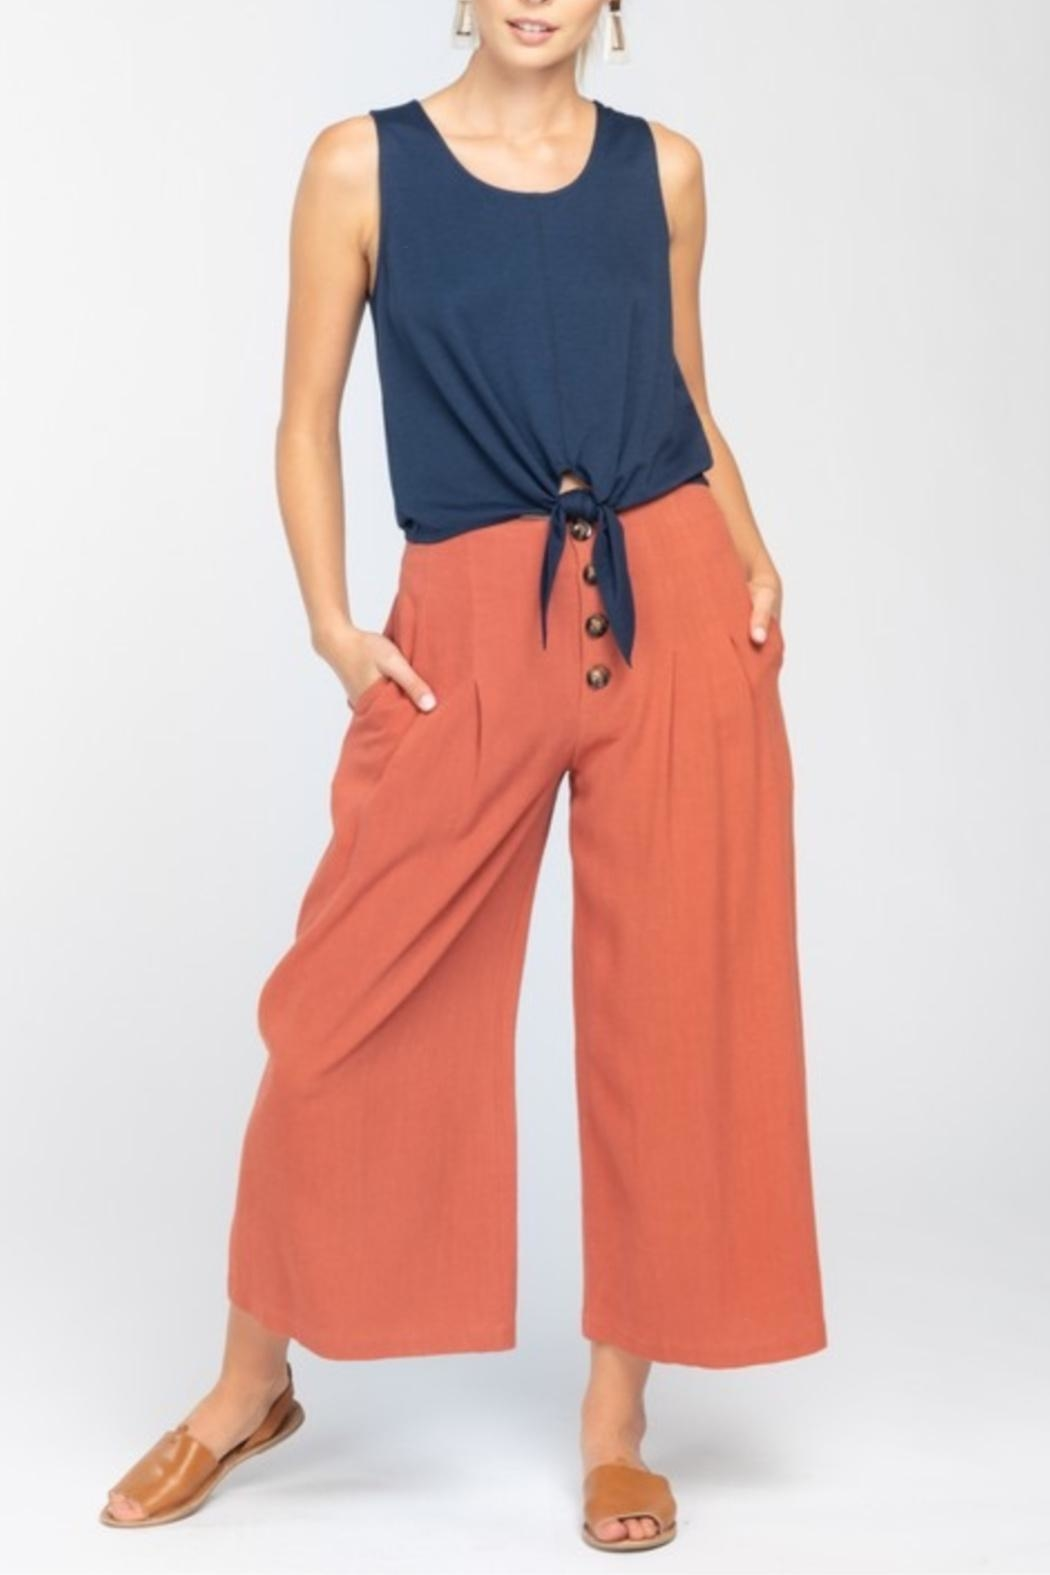 Everly Wideleg Cropped Pant - Front Cropped Image